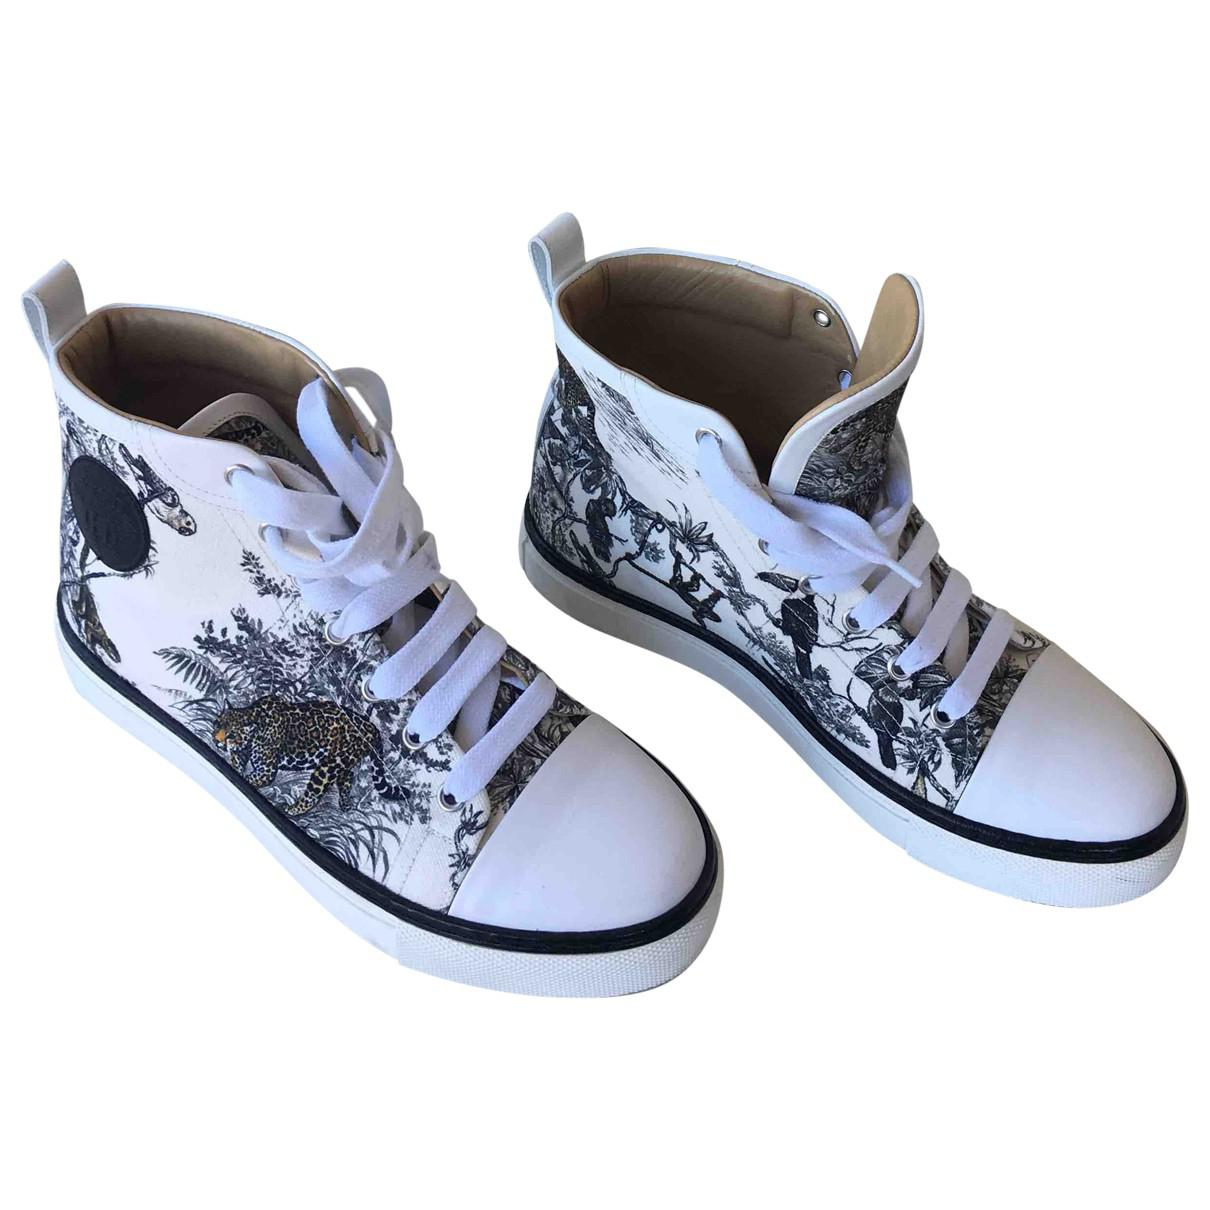 Get New Pre-owned - Cloth trainers Herm Clearance 100% Original Reliable Websites Sale Online PszwXAur